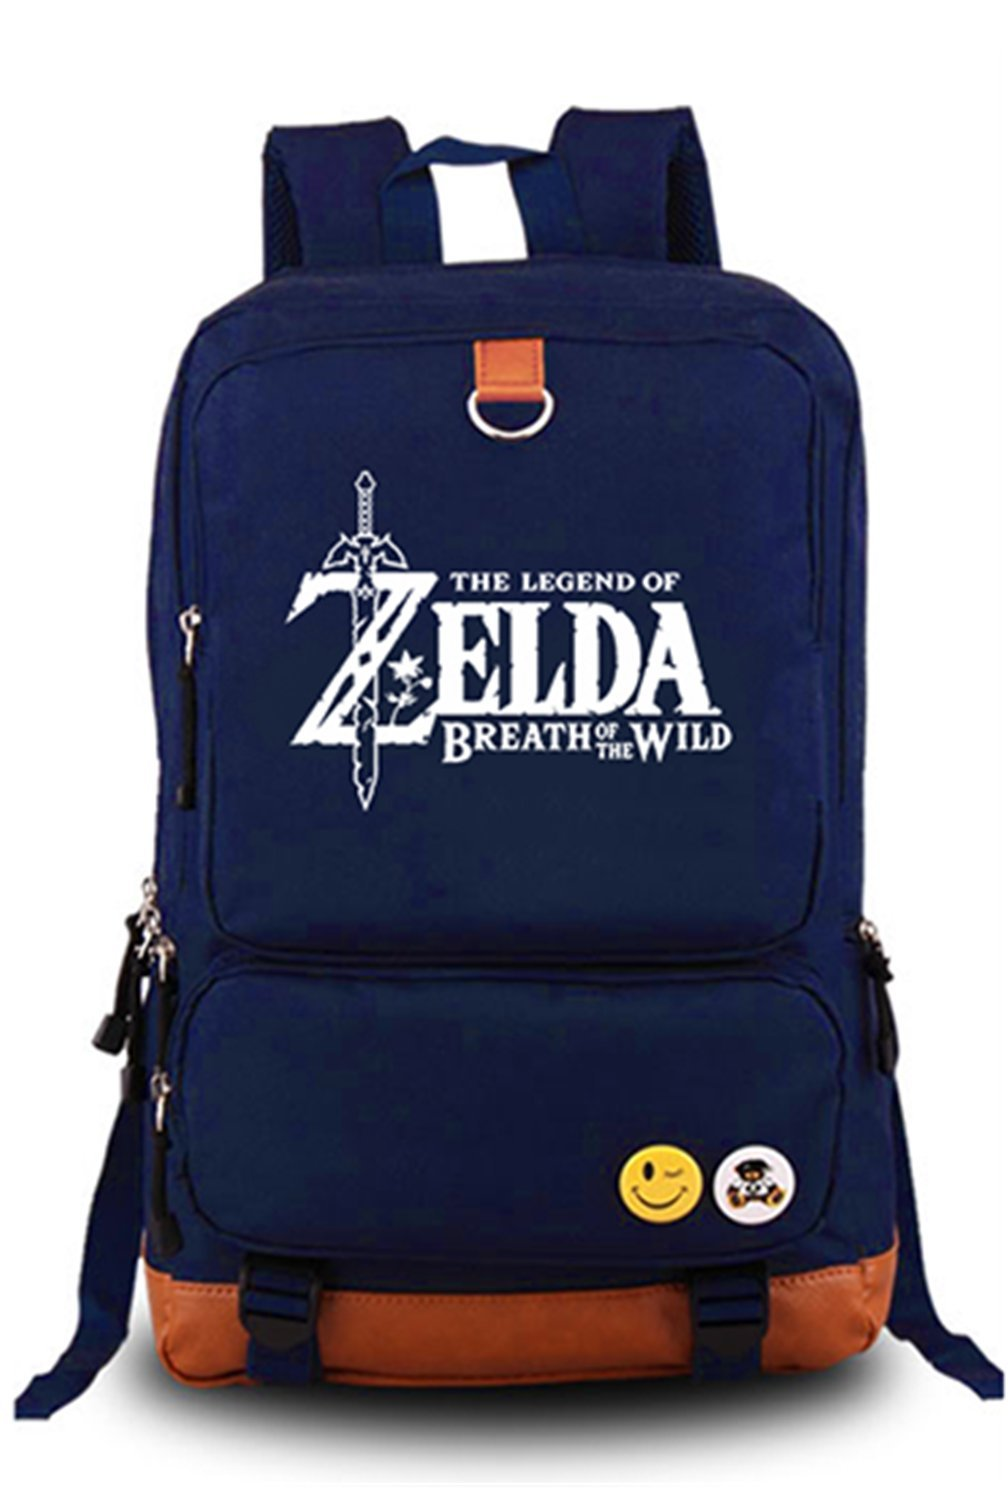 526dae328583 YOYOSHome Luminous Anime The Legend of Zelda Cosplay Bookbag College ...